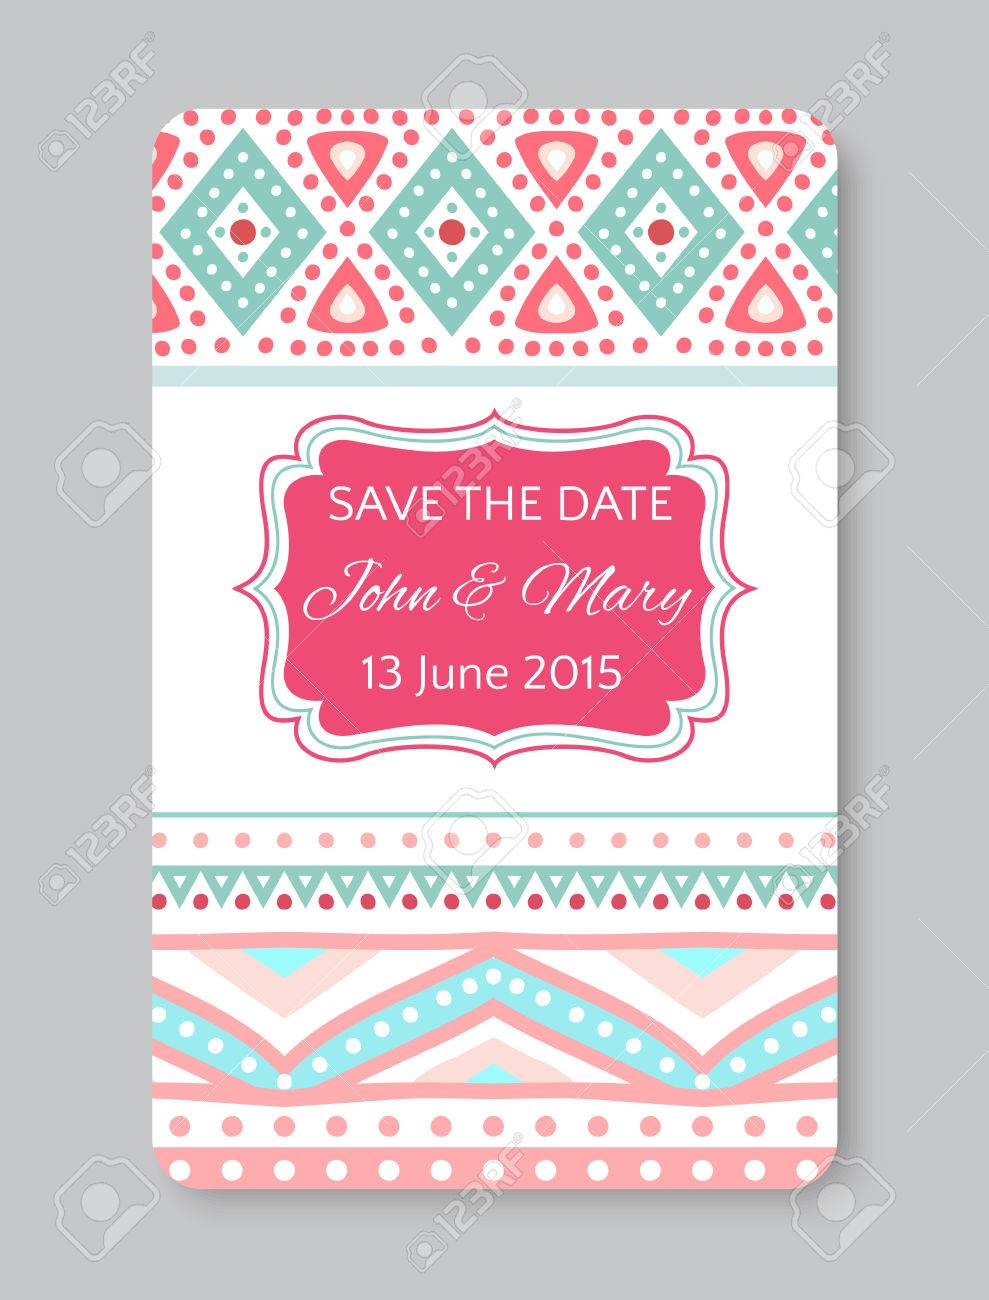 Perfect Wedding Template With Doodles Tribal Theme Ideal For